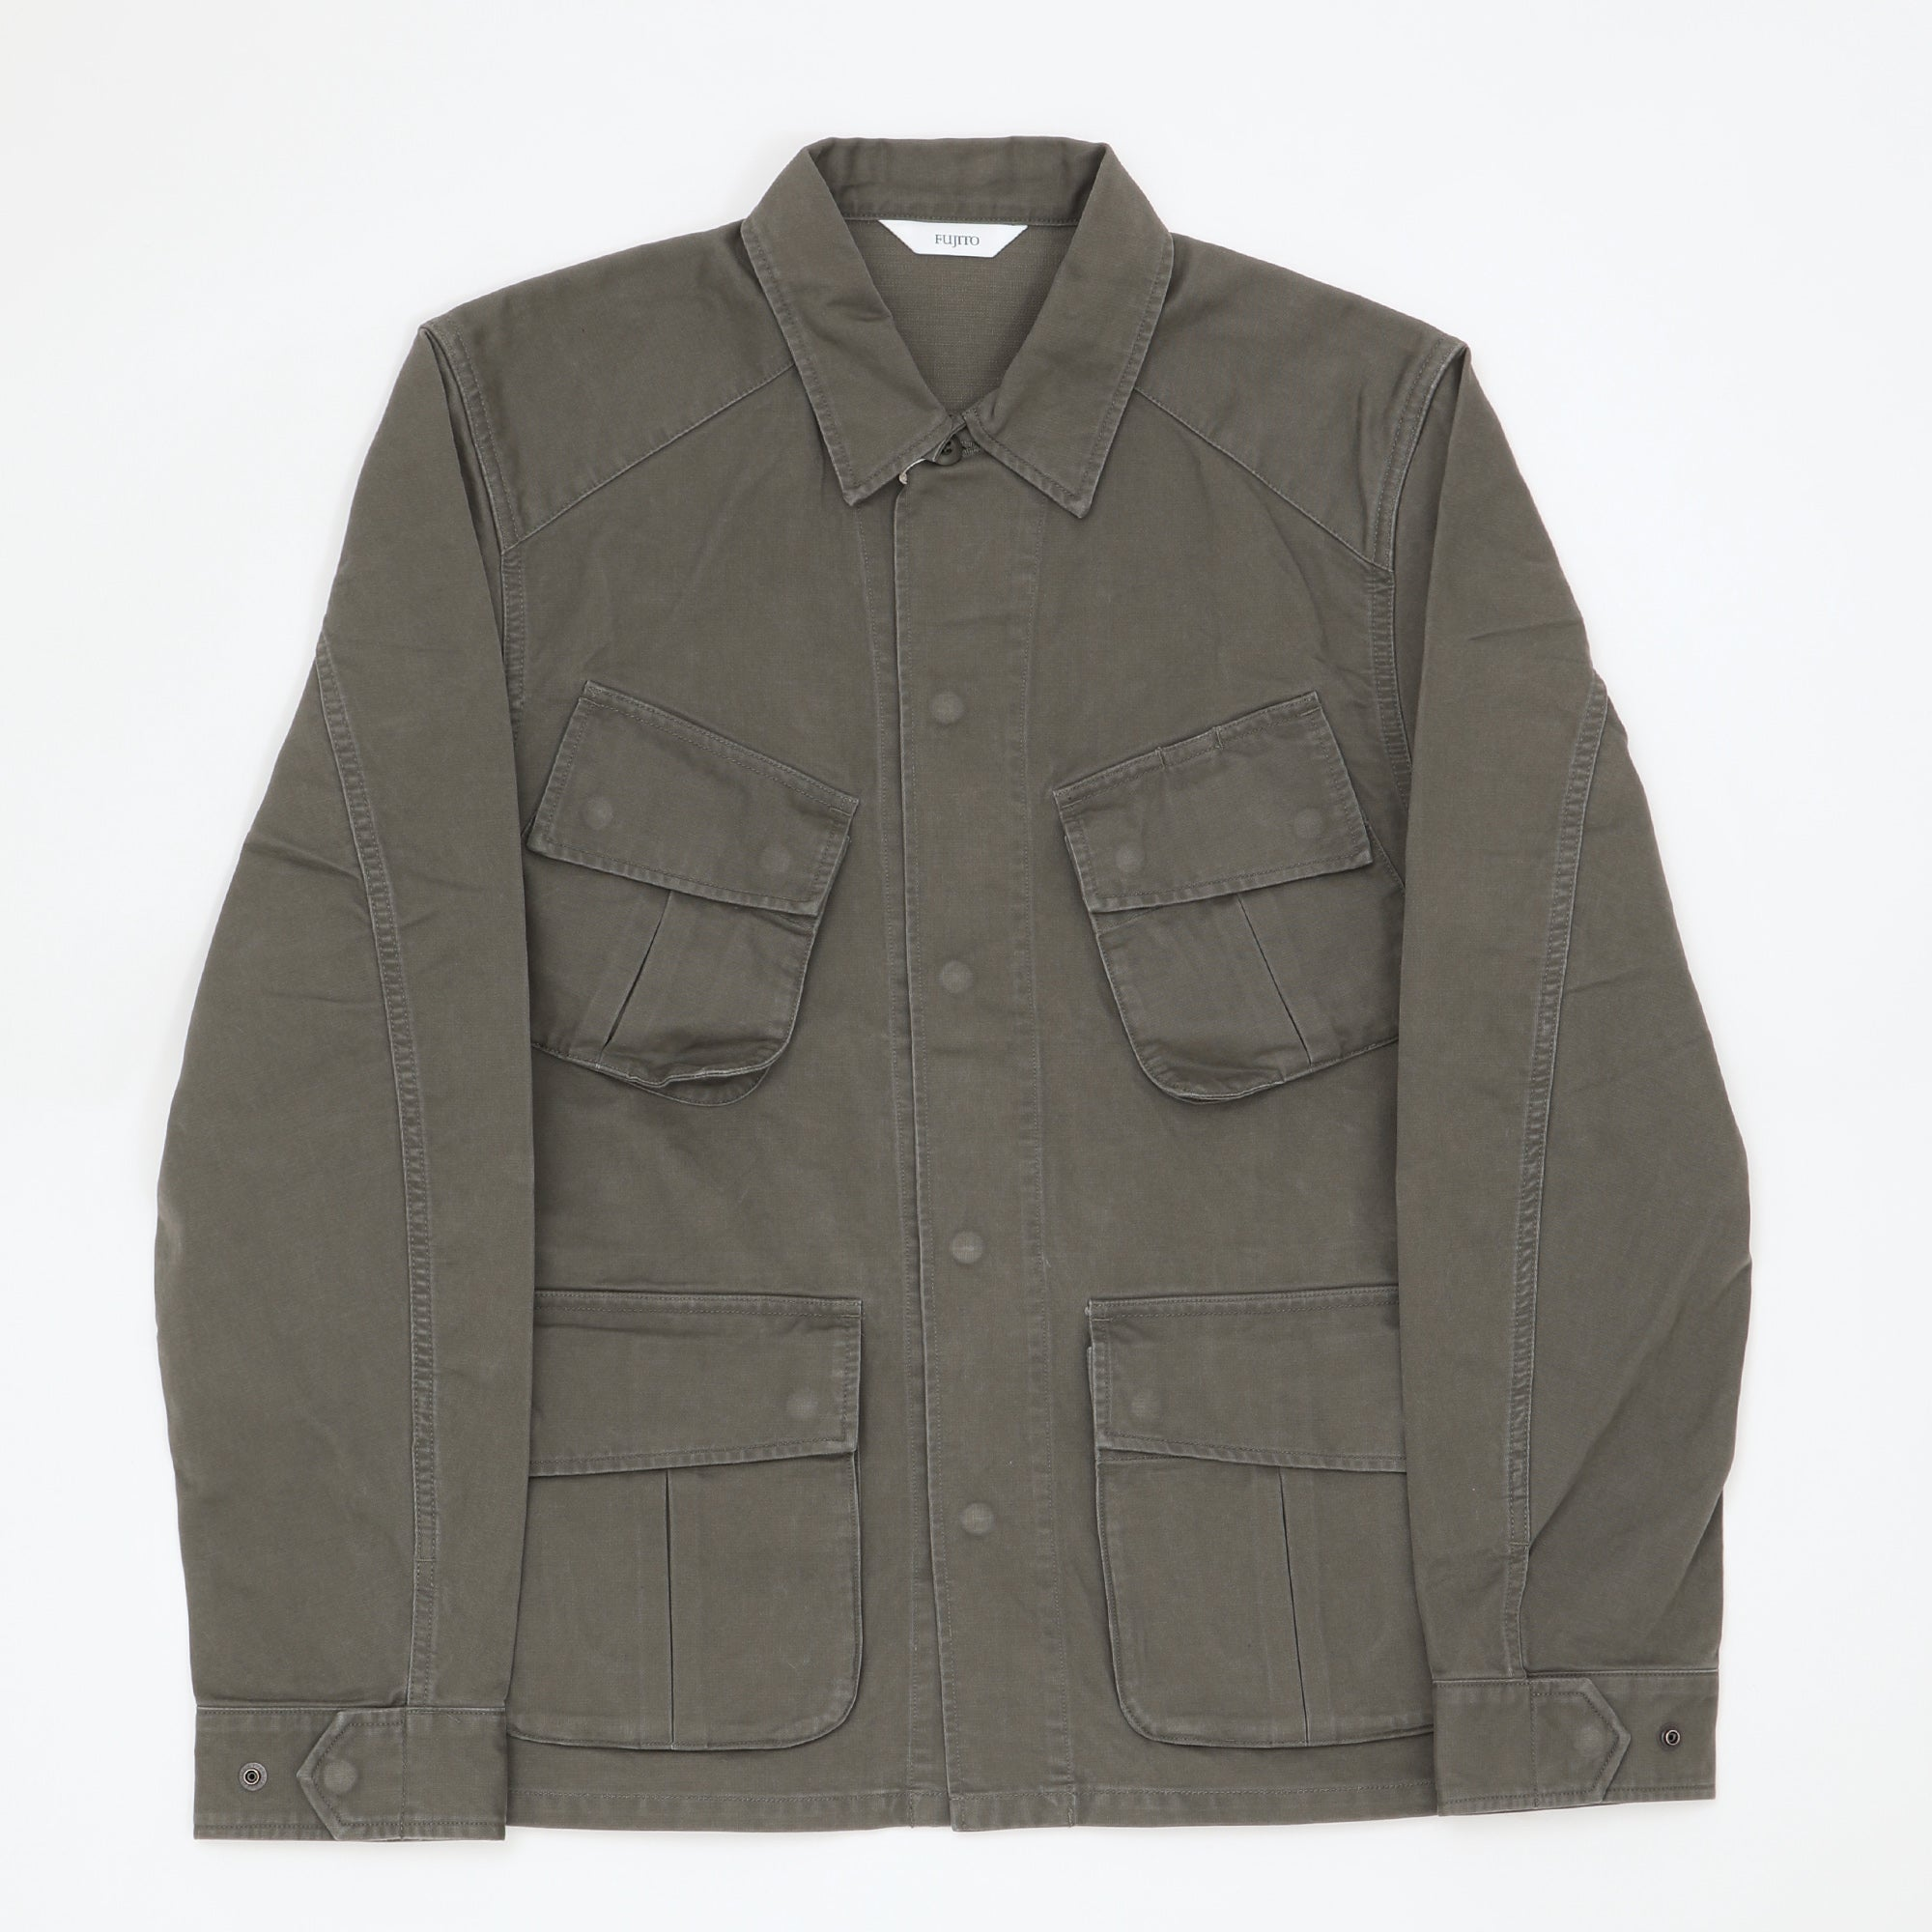 Jungle Fatigue Jacket (Olive Green)